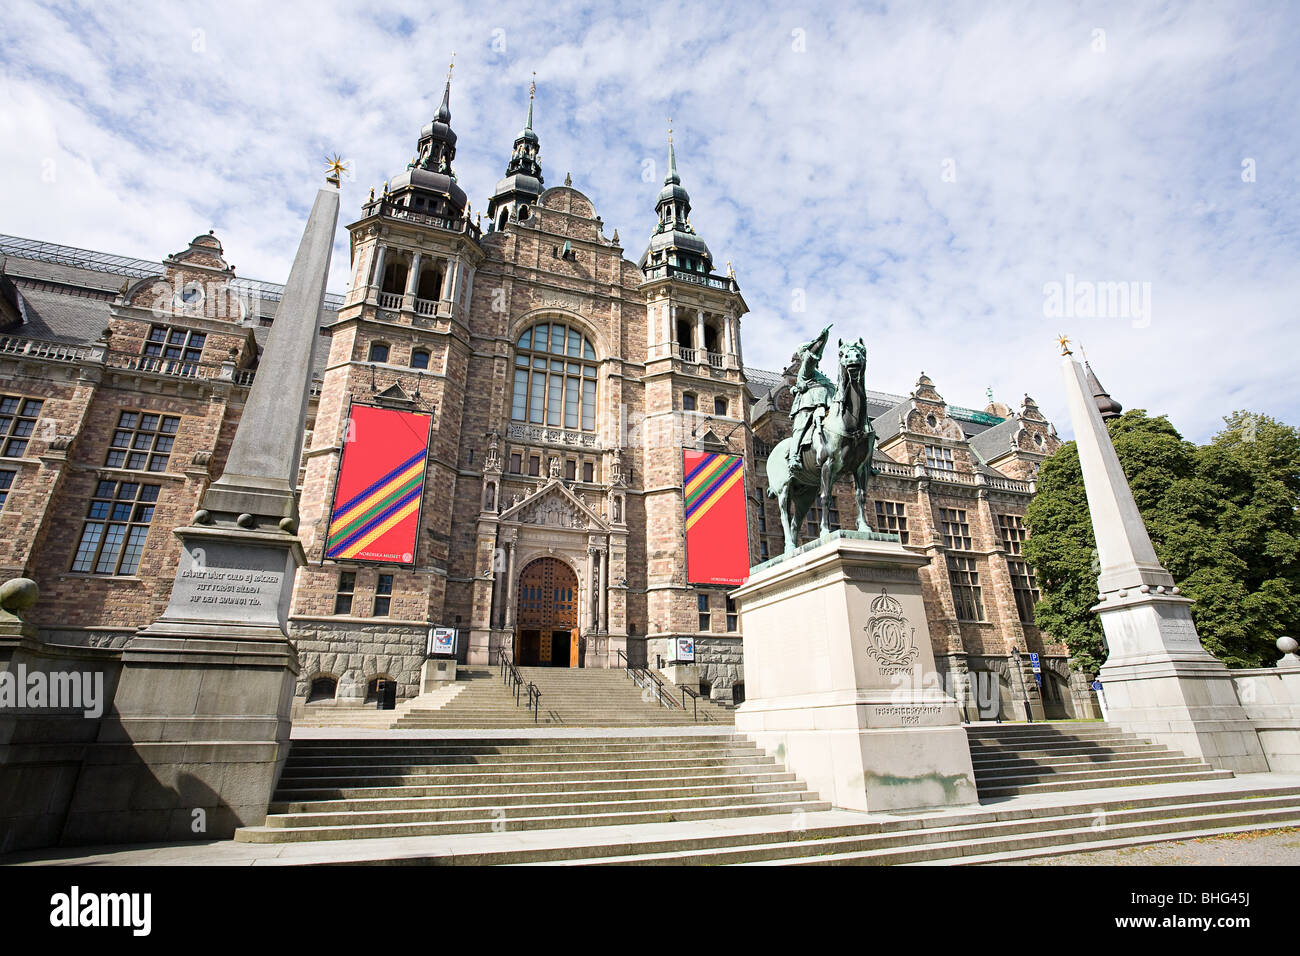 Nordic museum in stockholm - Stock Image